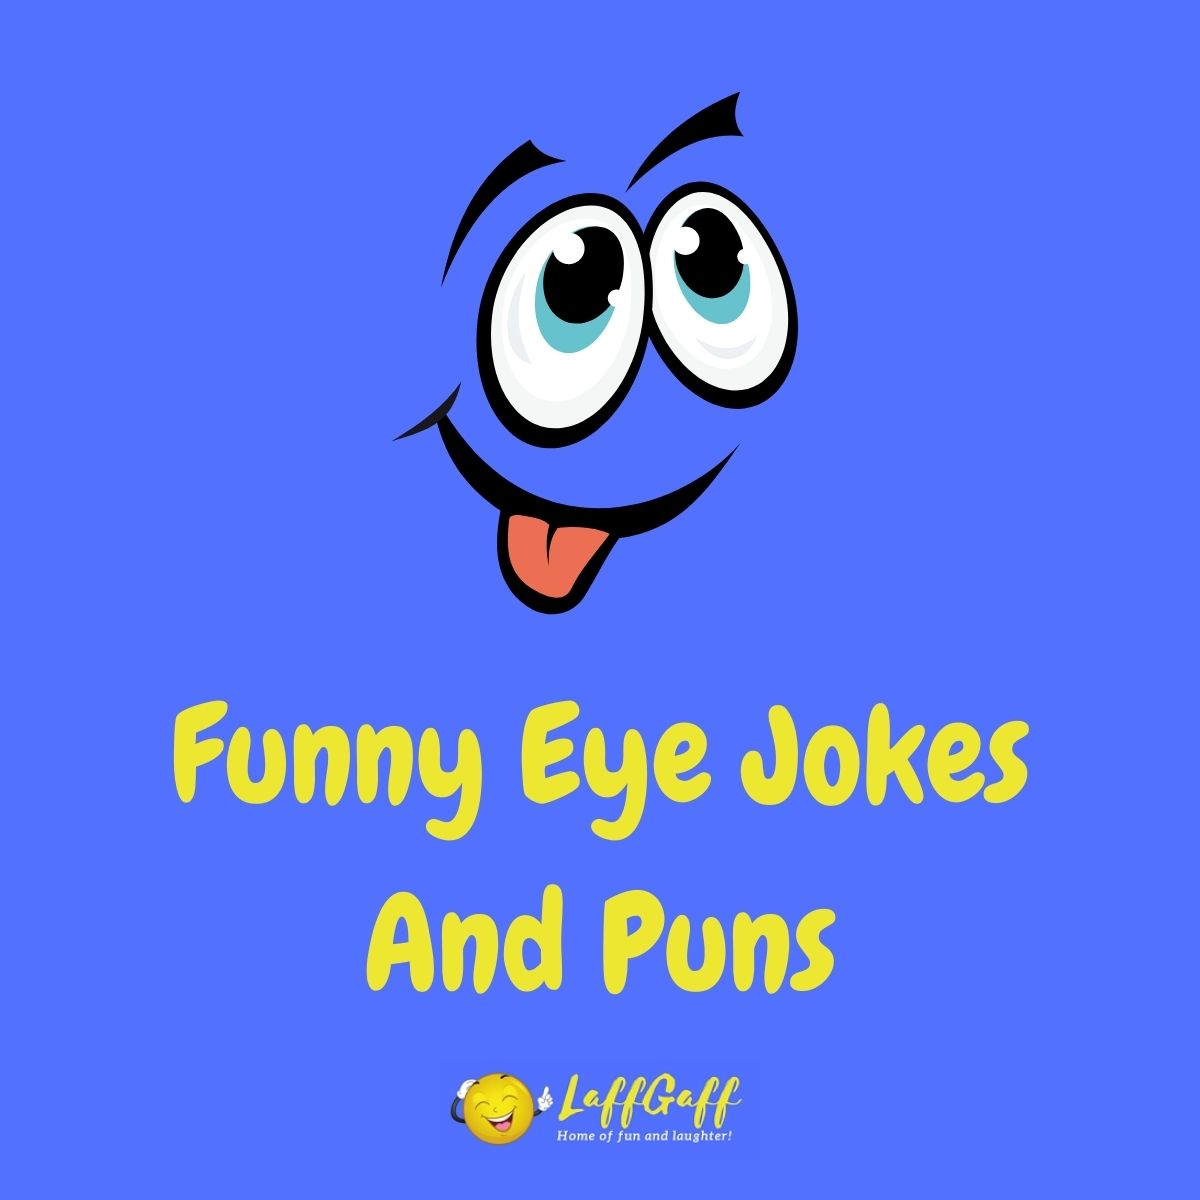 Featured image for a page of funny eye jokes and puns.